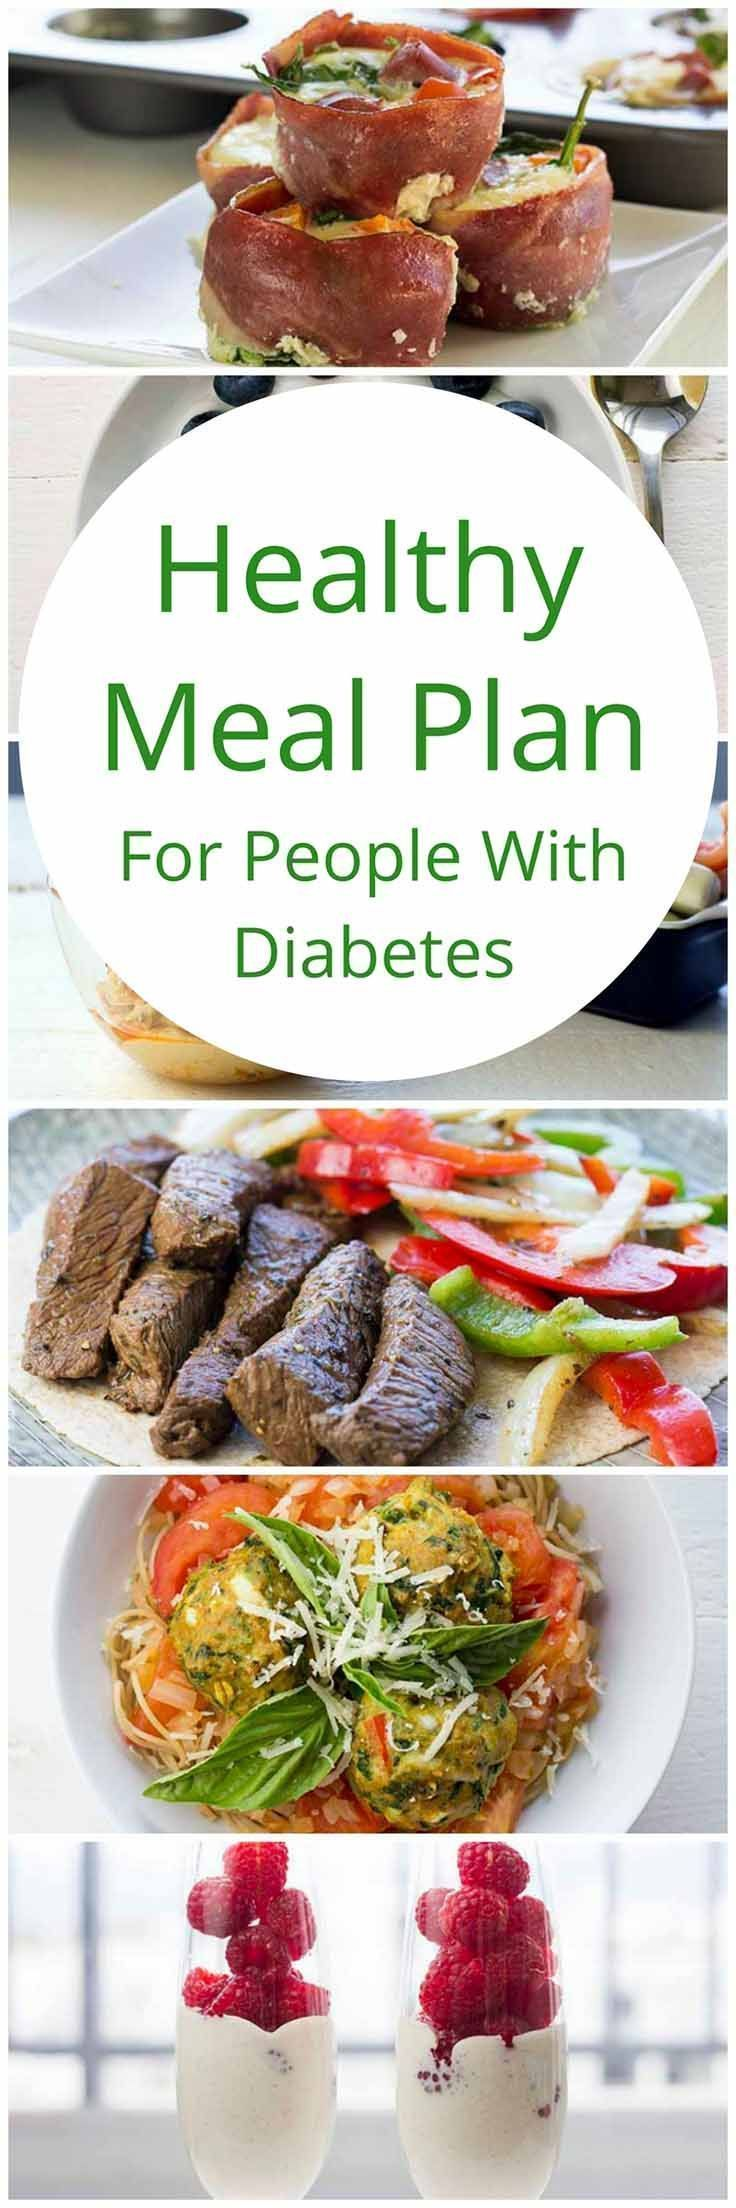 Fit With Diabetes Meal Plan #5 #diabetesmenu